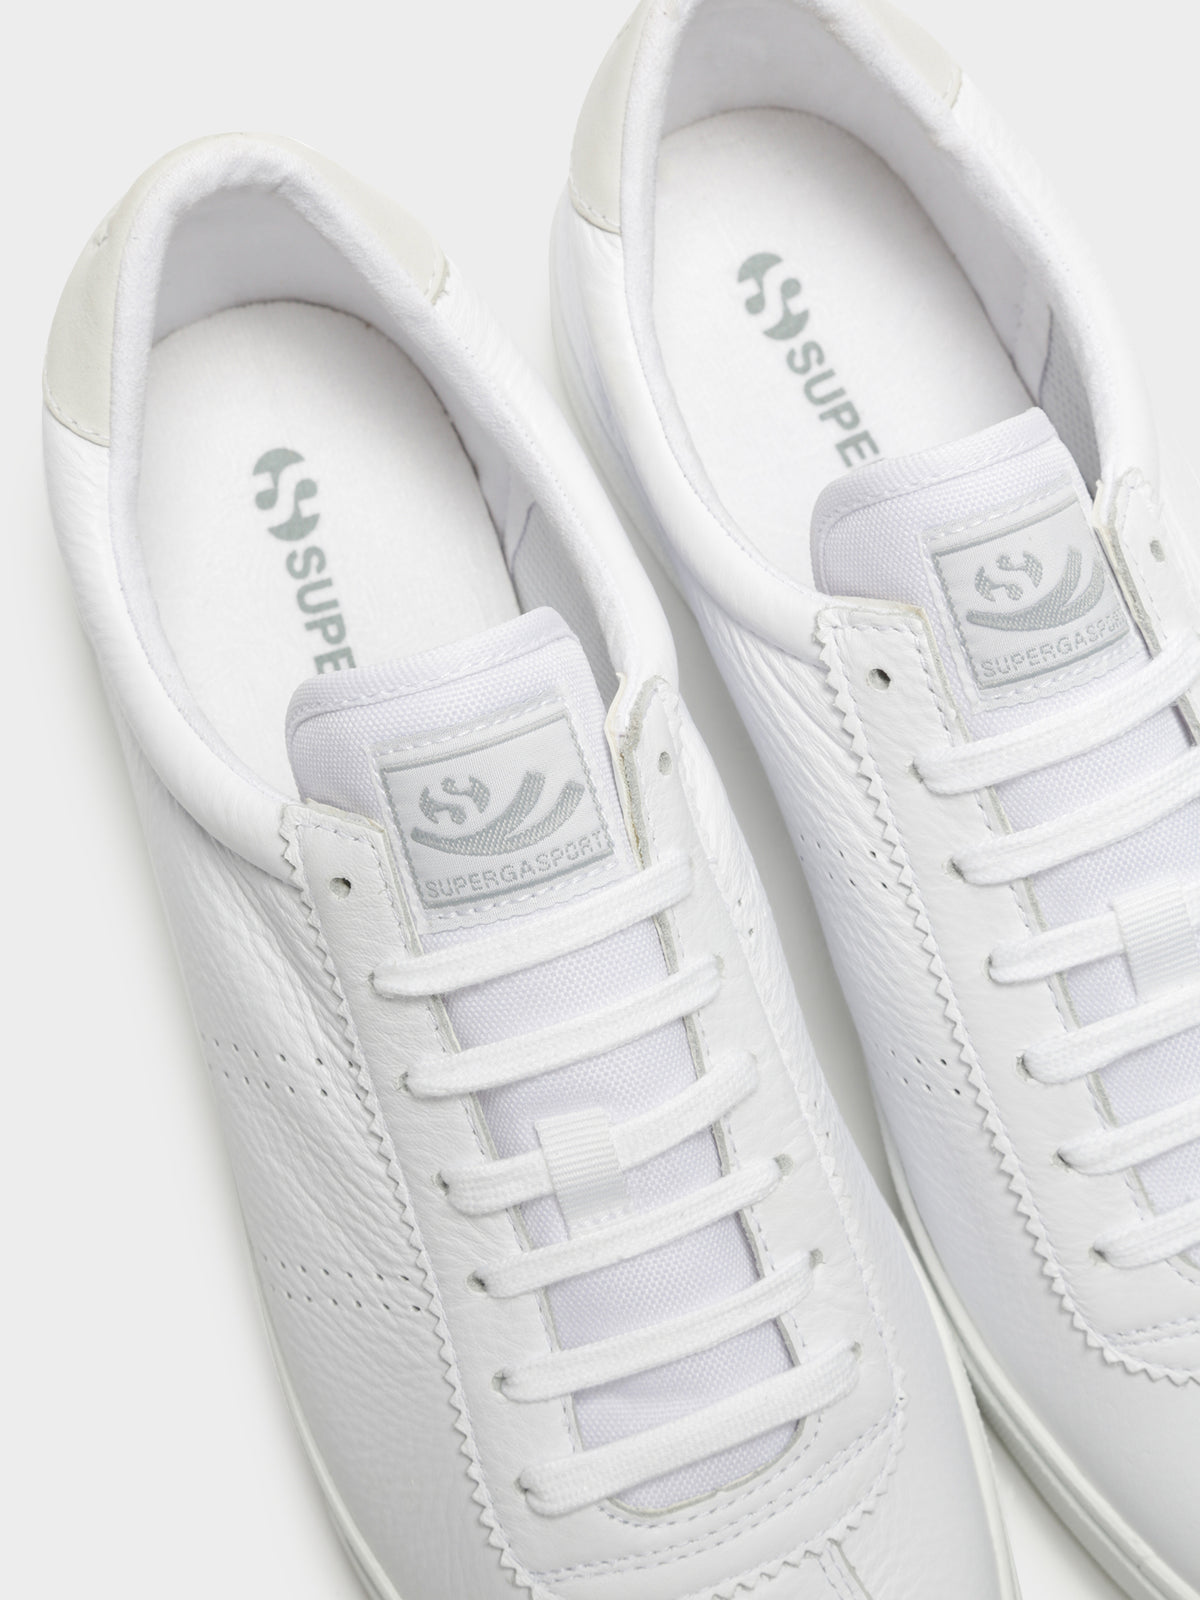 Mens 2843 Clubs Comfleau Sneakers in White